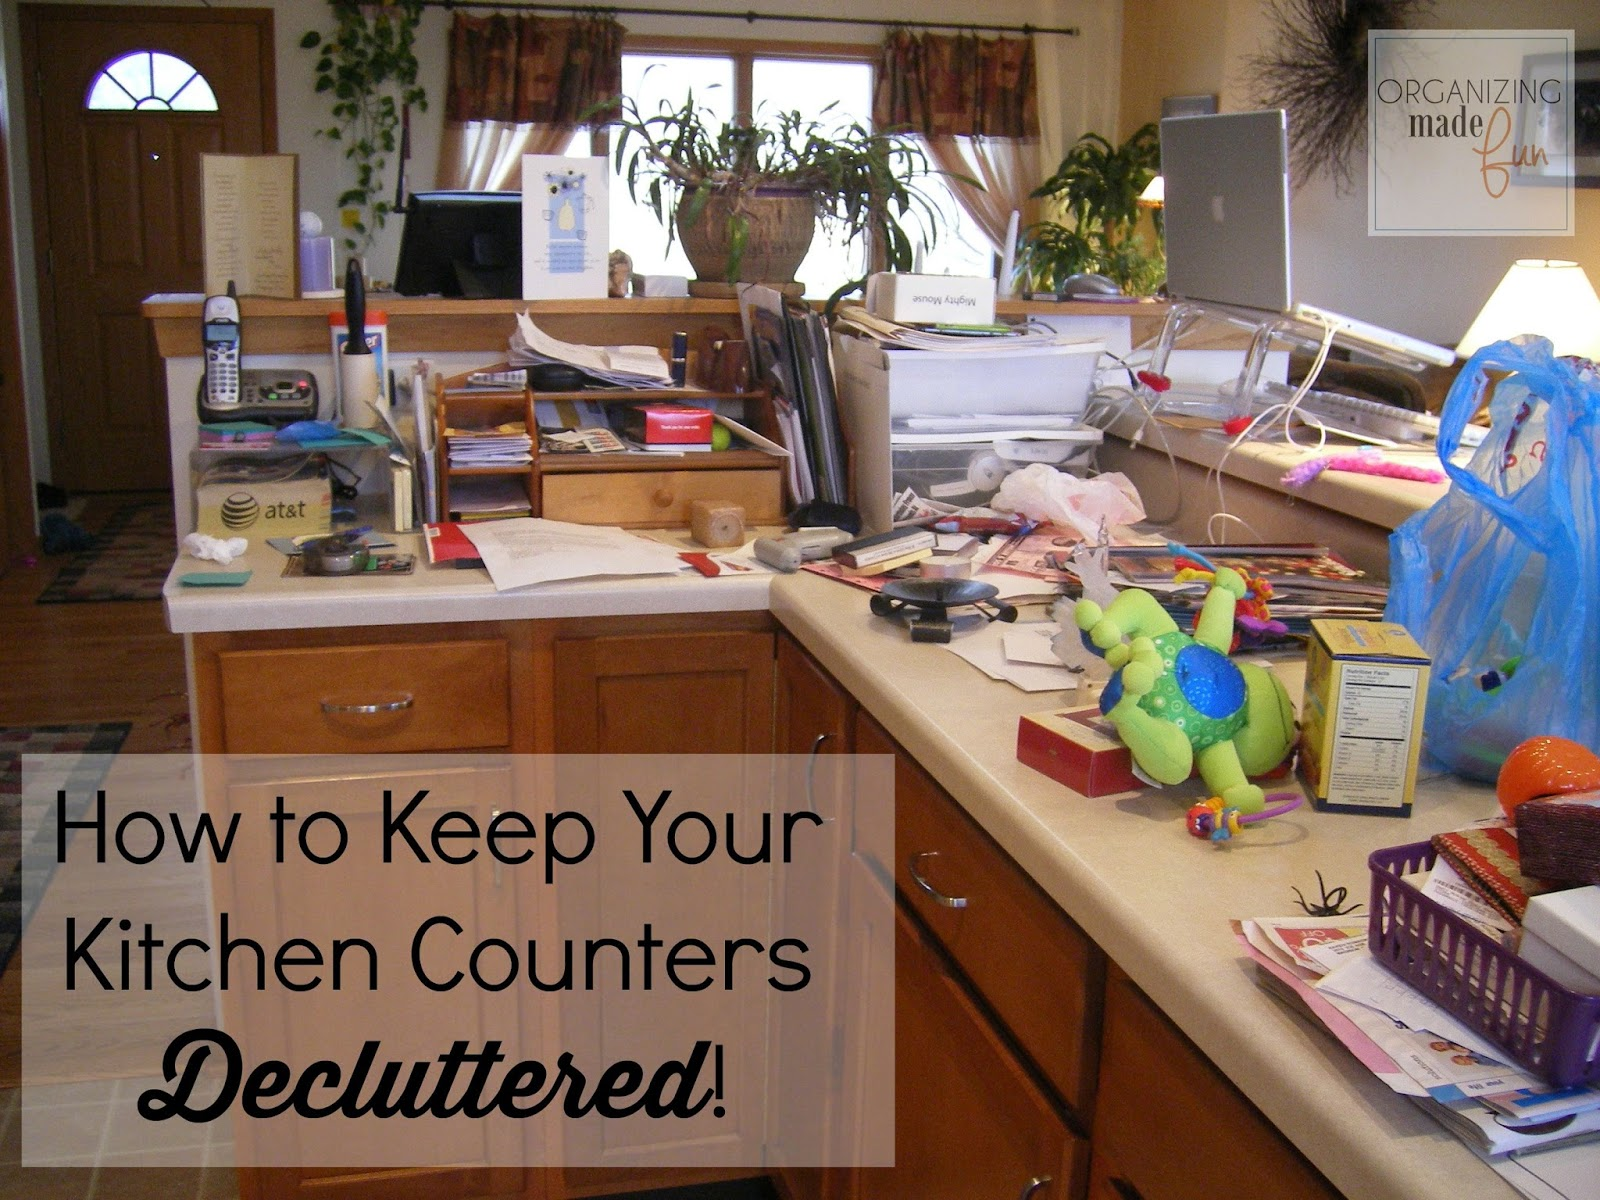 Charmant How To Keep Your Kitchen Counters Decluttered   For GOOD!  OrganizingMadeFun.com